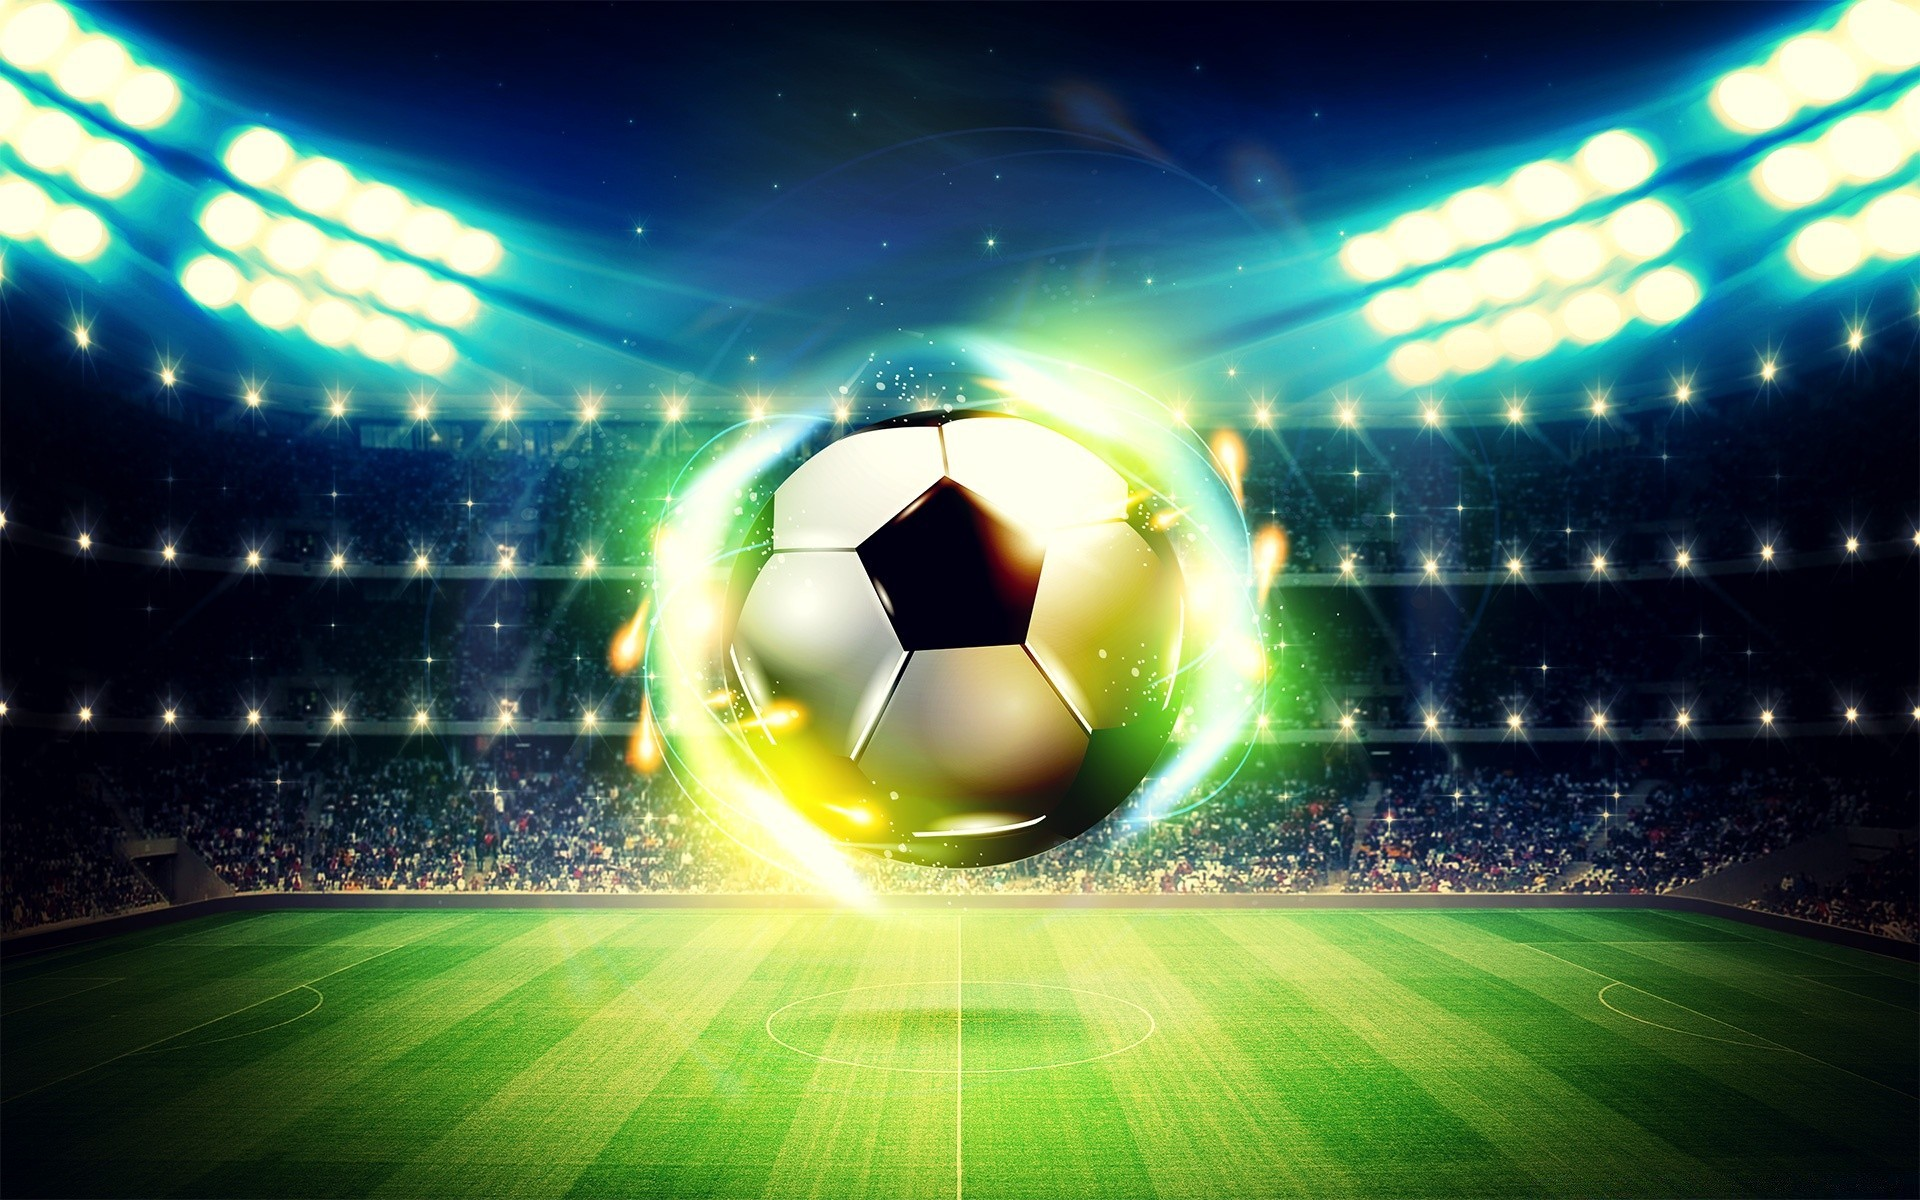 association football and soccer The association came from the formation of the football association (fa) on october 26, 1863 during this meeting, the fa attempted to bring together the different codes and systems used across britain to form one accepted set of soccer rules.